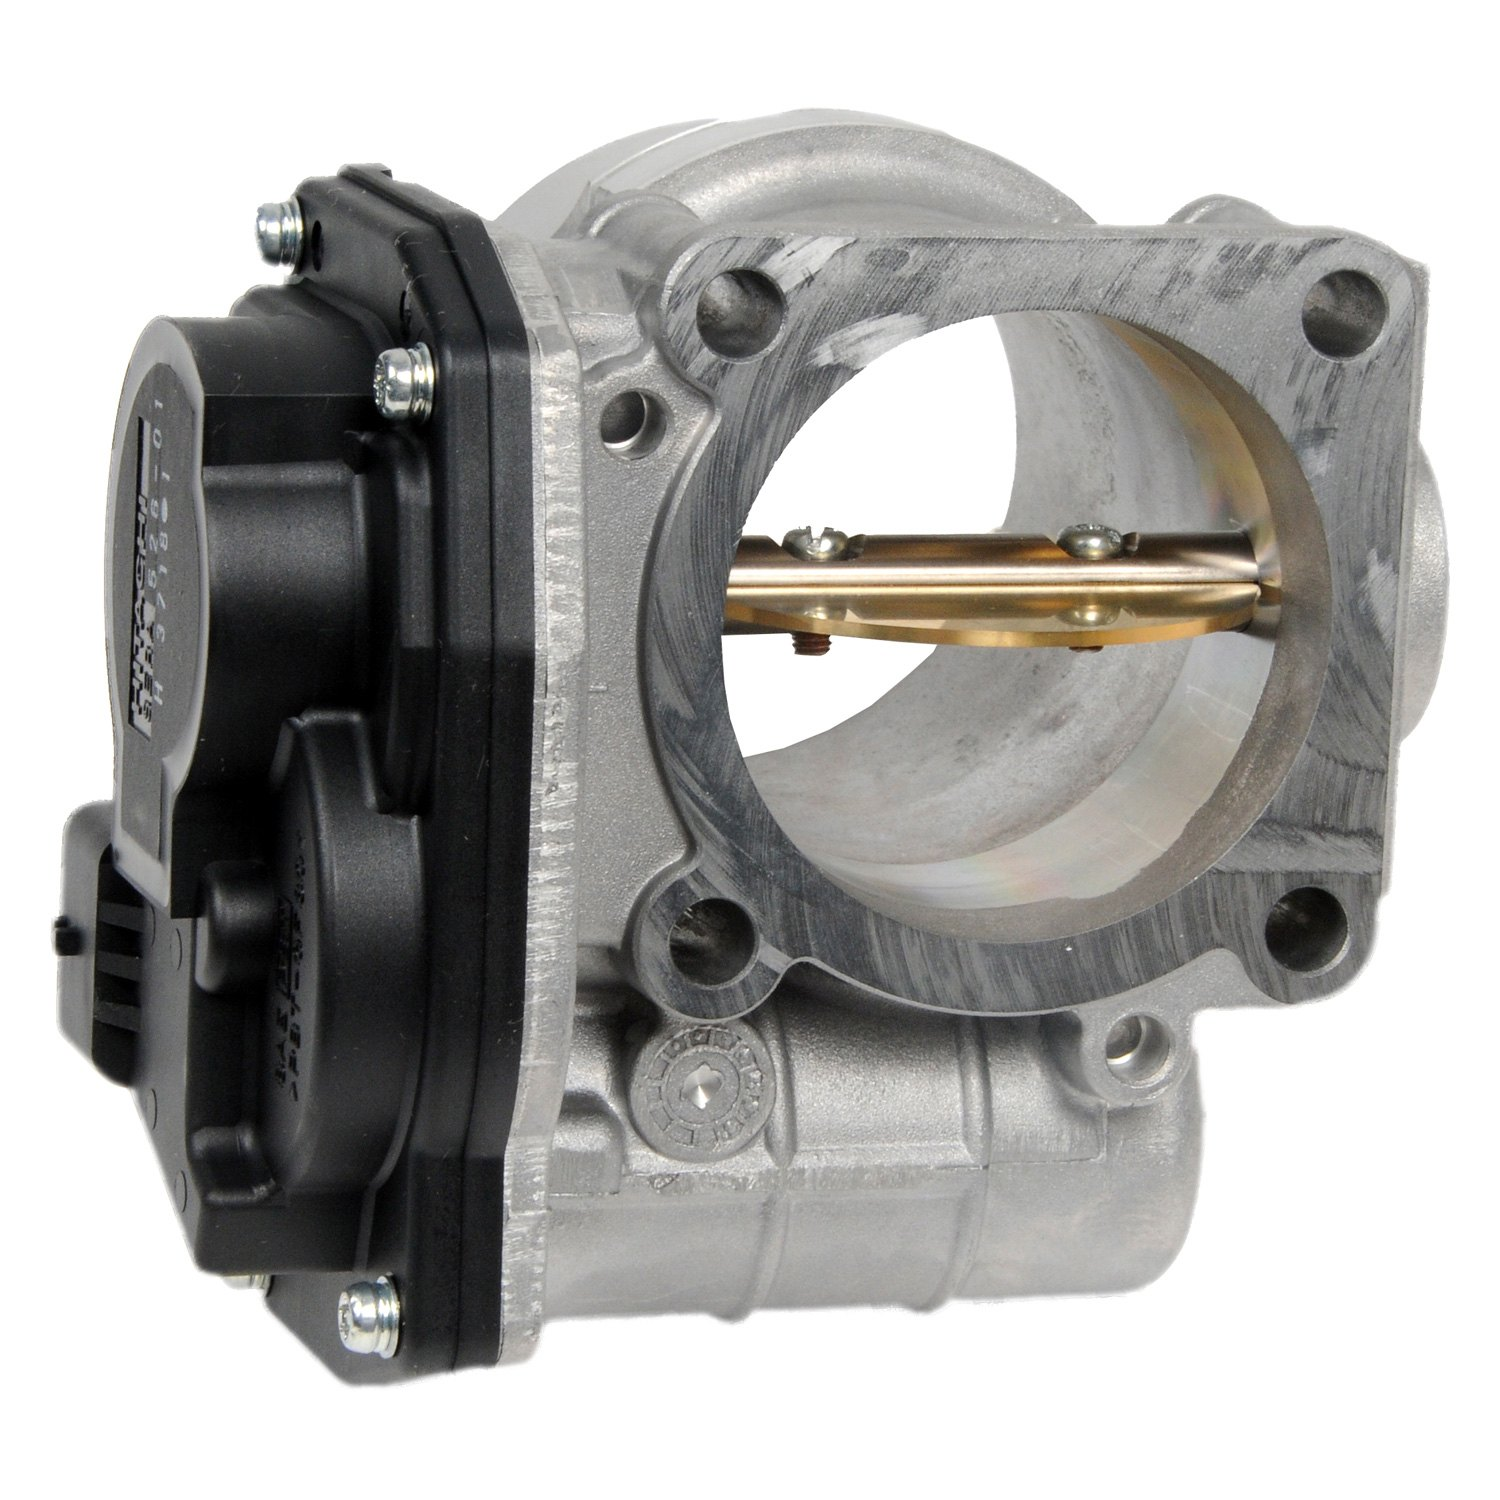 acdelco chevy express 2012 gm original equipment fuel injection throttle body. Black Bedroom Furniture Sets. Home Design Ideas